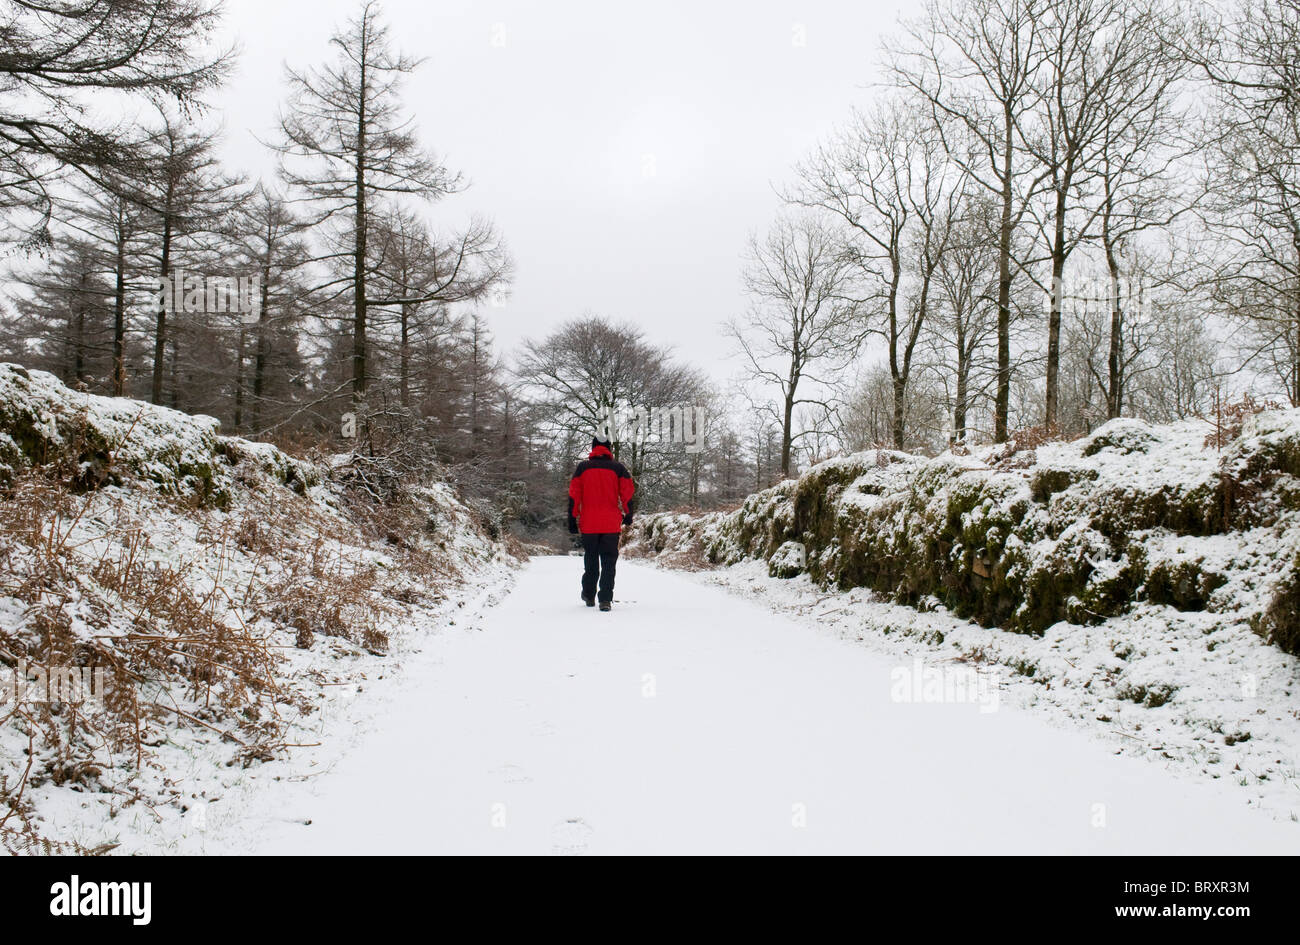 Walker in red winter jacket walking down a snowy lane, Dartmoor, Devon UK - Stock Image